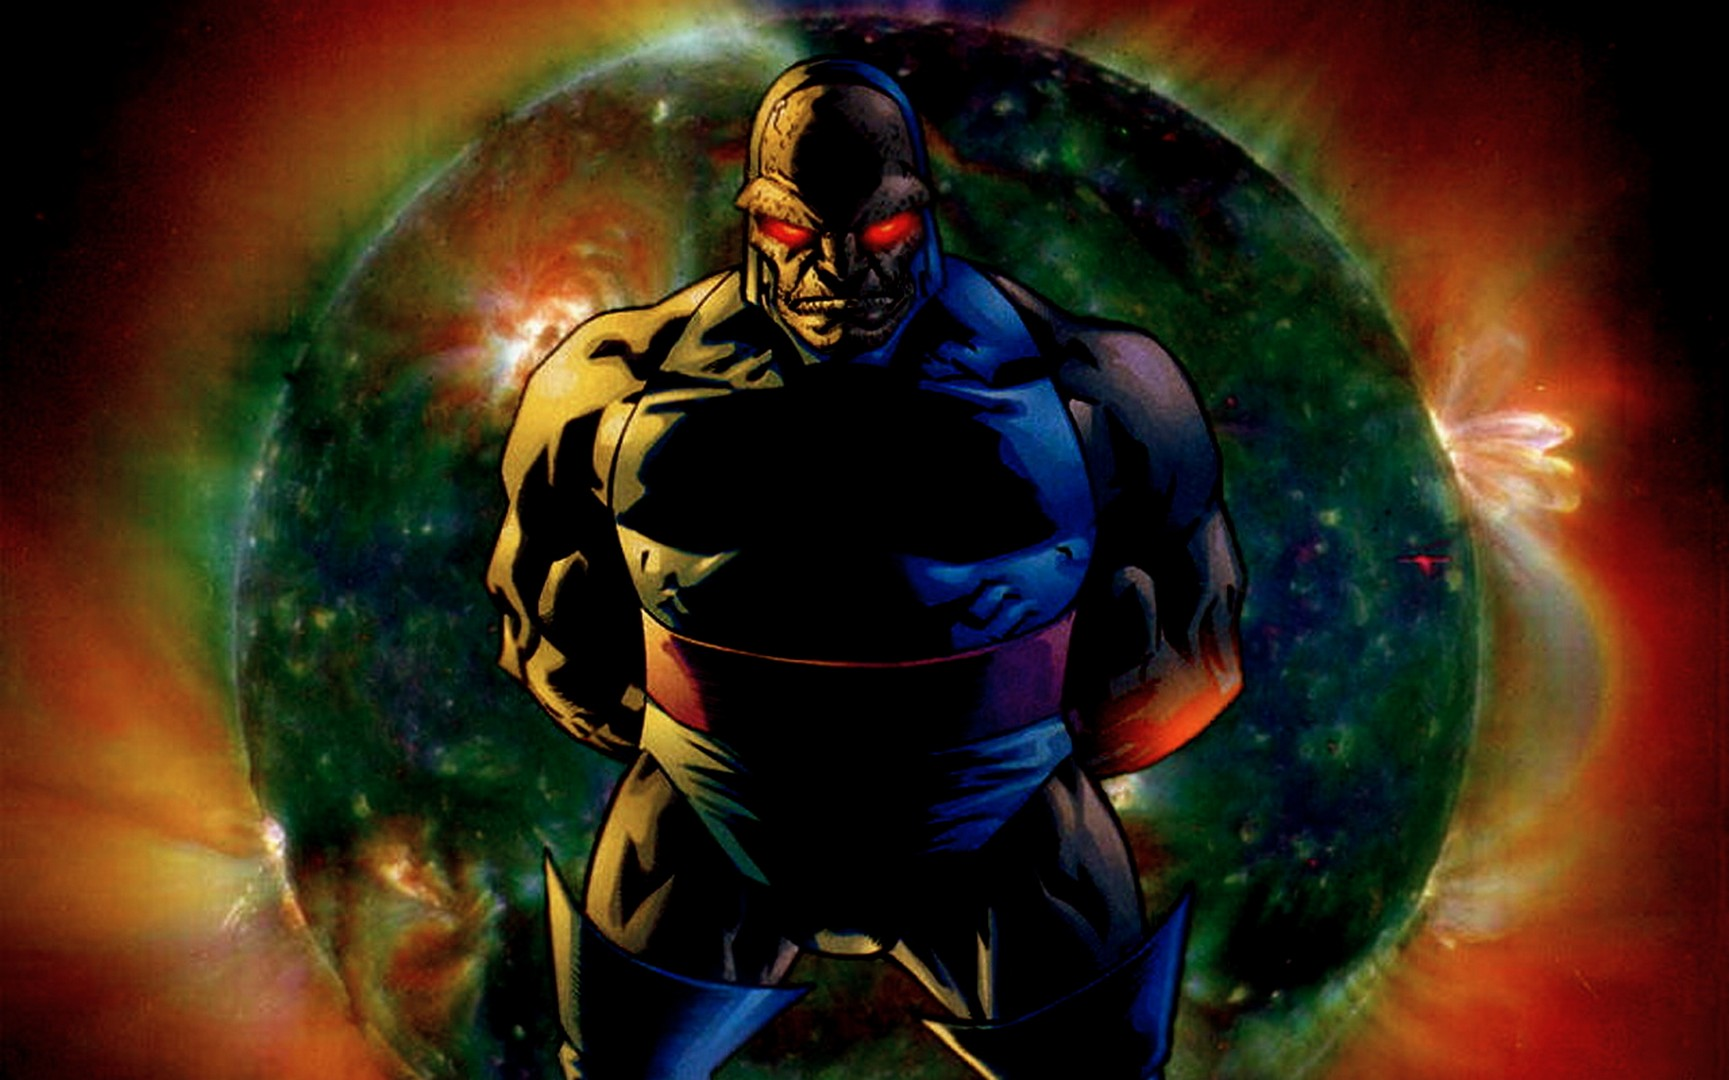 Darkseid Wallpapers Full HD 988WR44   4USkY 1729x1080